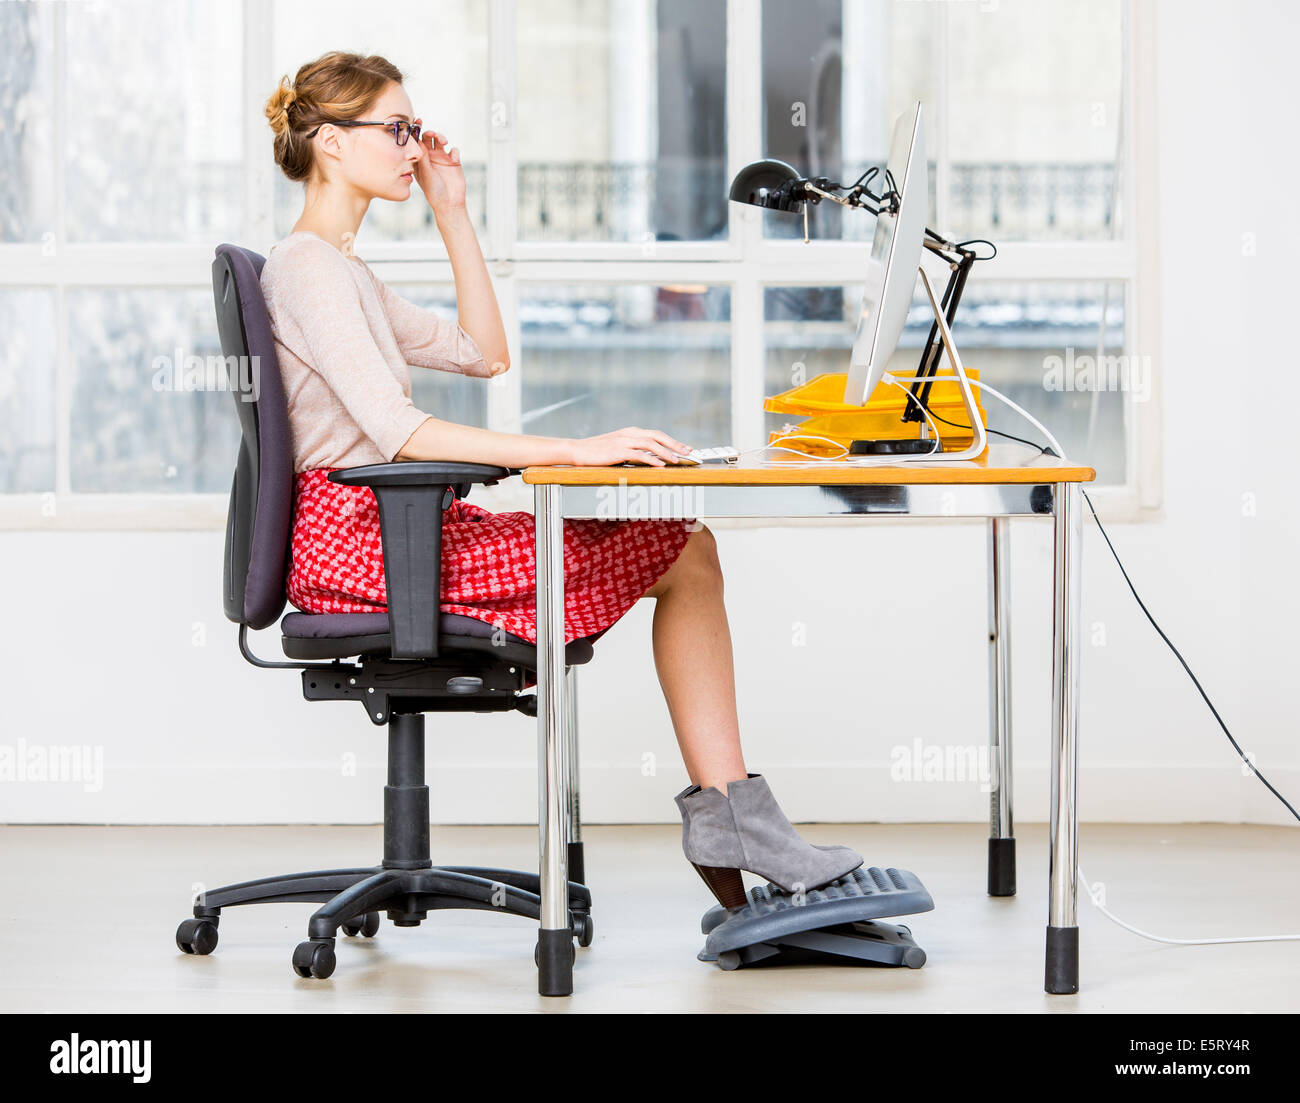 edo posture chair punisher skull adirondack pattern 1 x stock photos images alamy right for working at a computer image